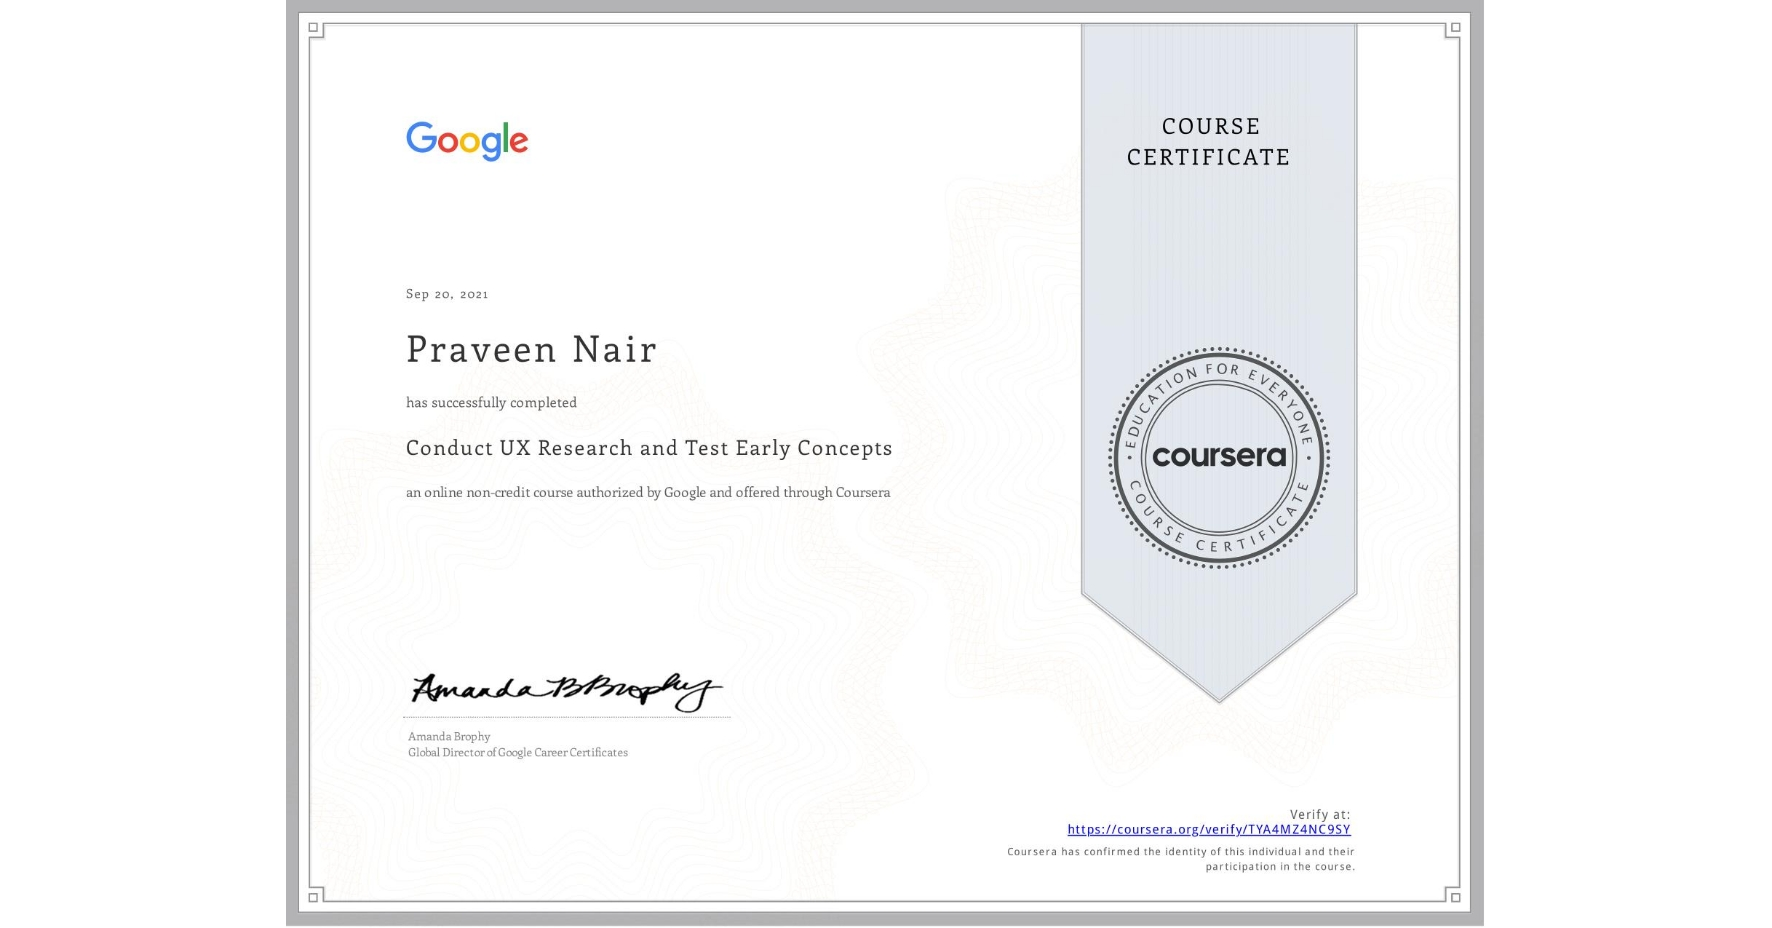 View certificate for Praveen Nair, Conduct UX Research and Test Early Concepts, an online non-credit course authorized by Google and offered through Coursera